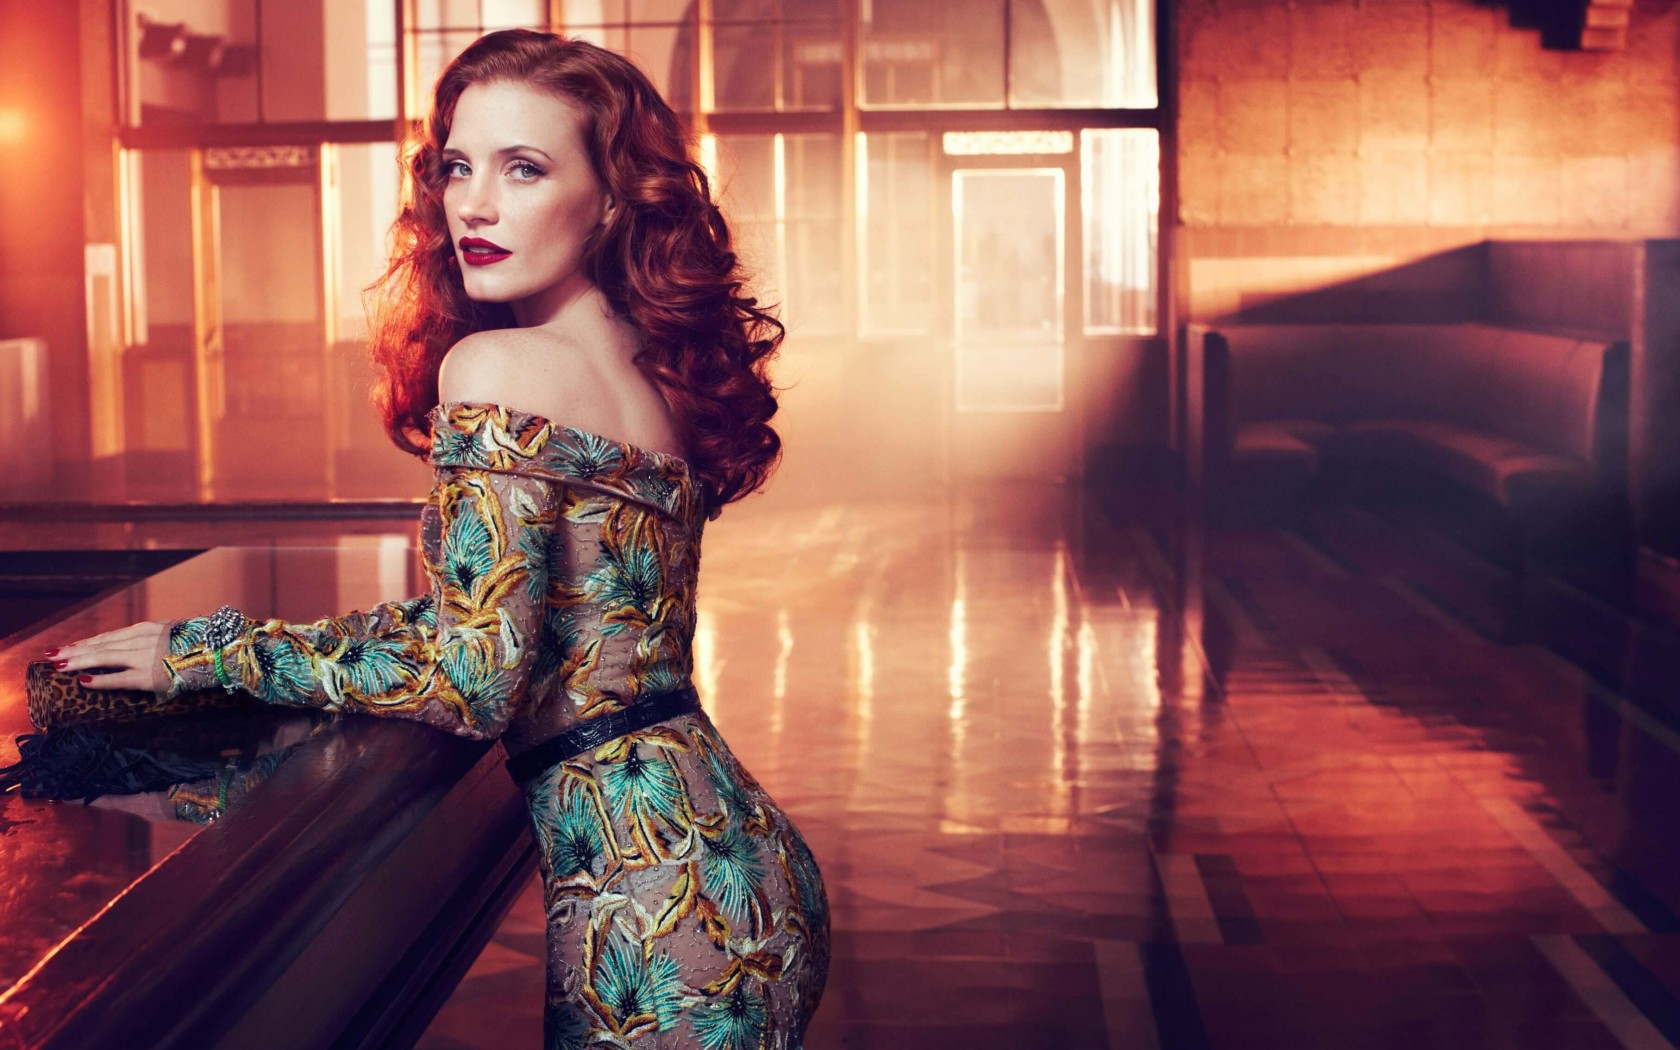 Jessica Chastain Wallpaper for Desktop 1680x1050